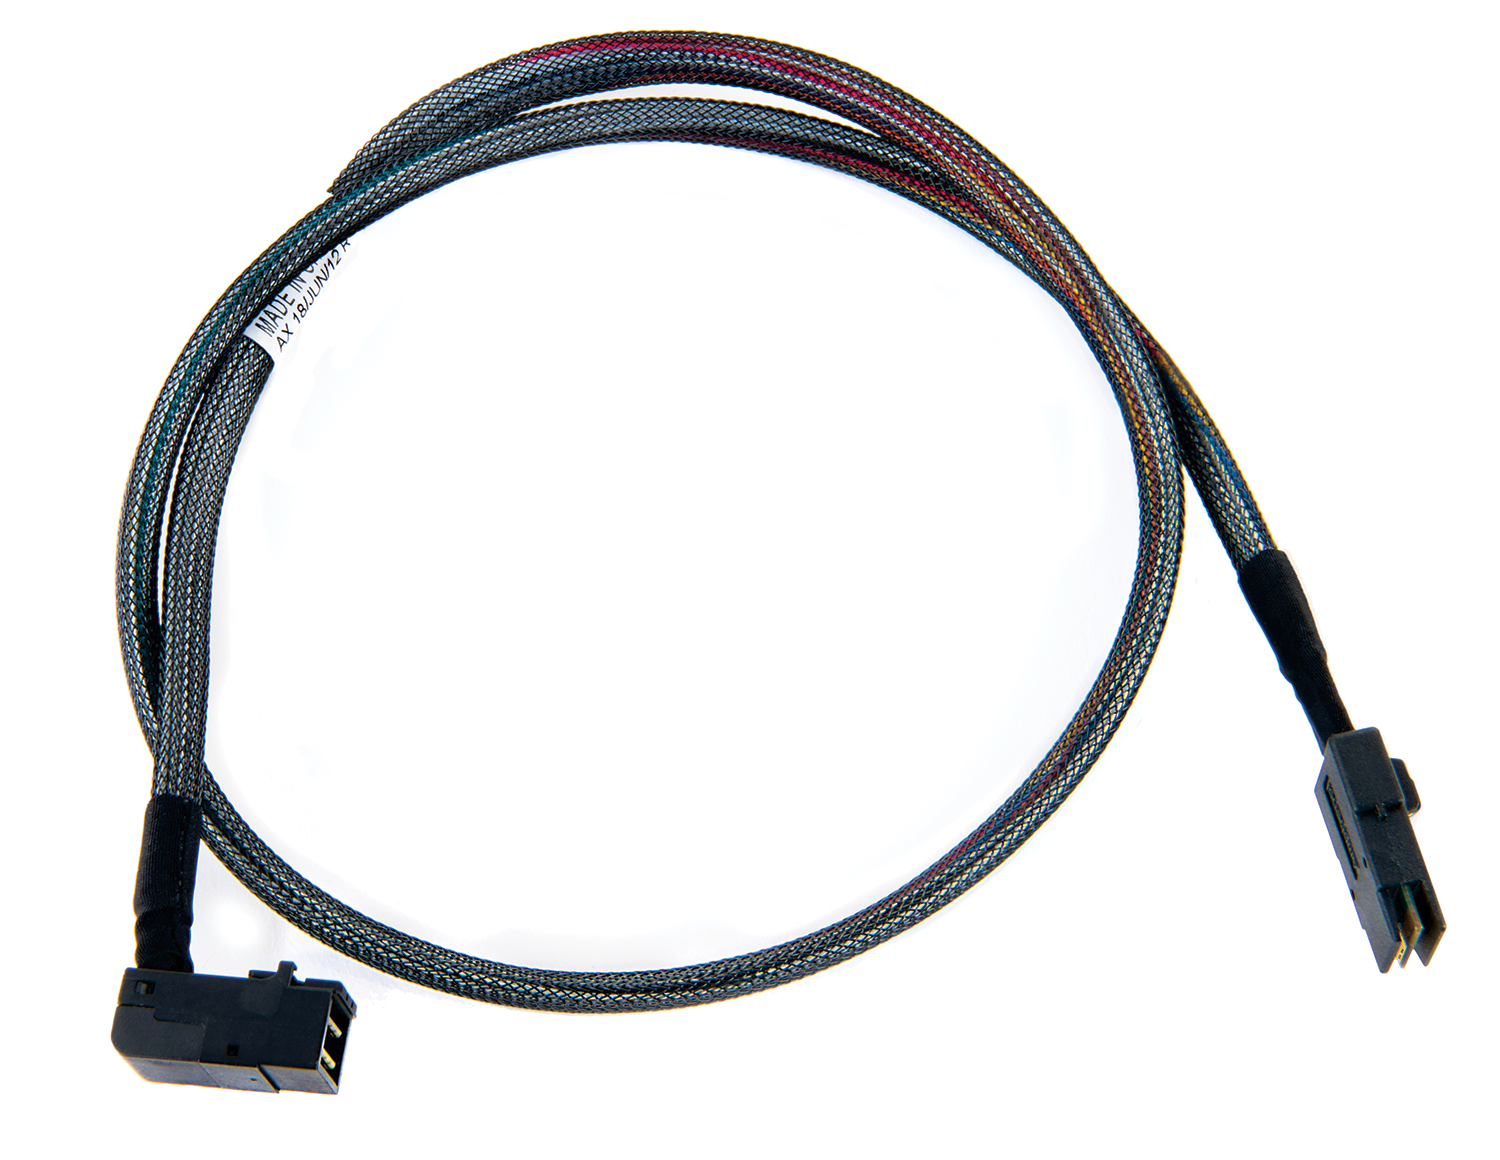 Internal R/A Mini SAS HDx4 (SFF-8643) to Mini SASx4 (SFF-8087) ACK-I-rA-HDmSAS-mSAS-.5M Cable - 0.5m